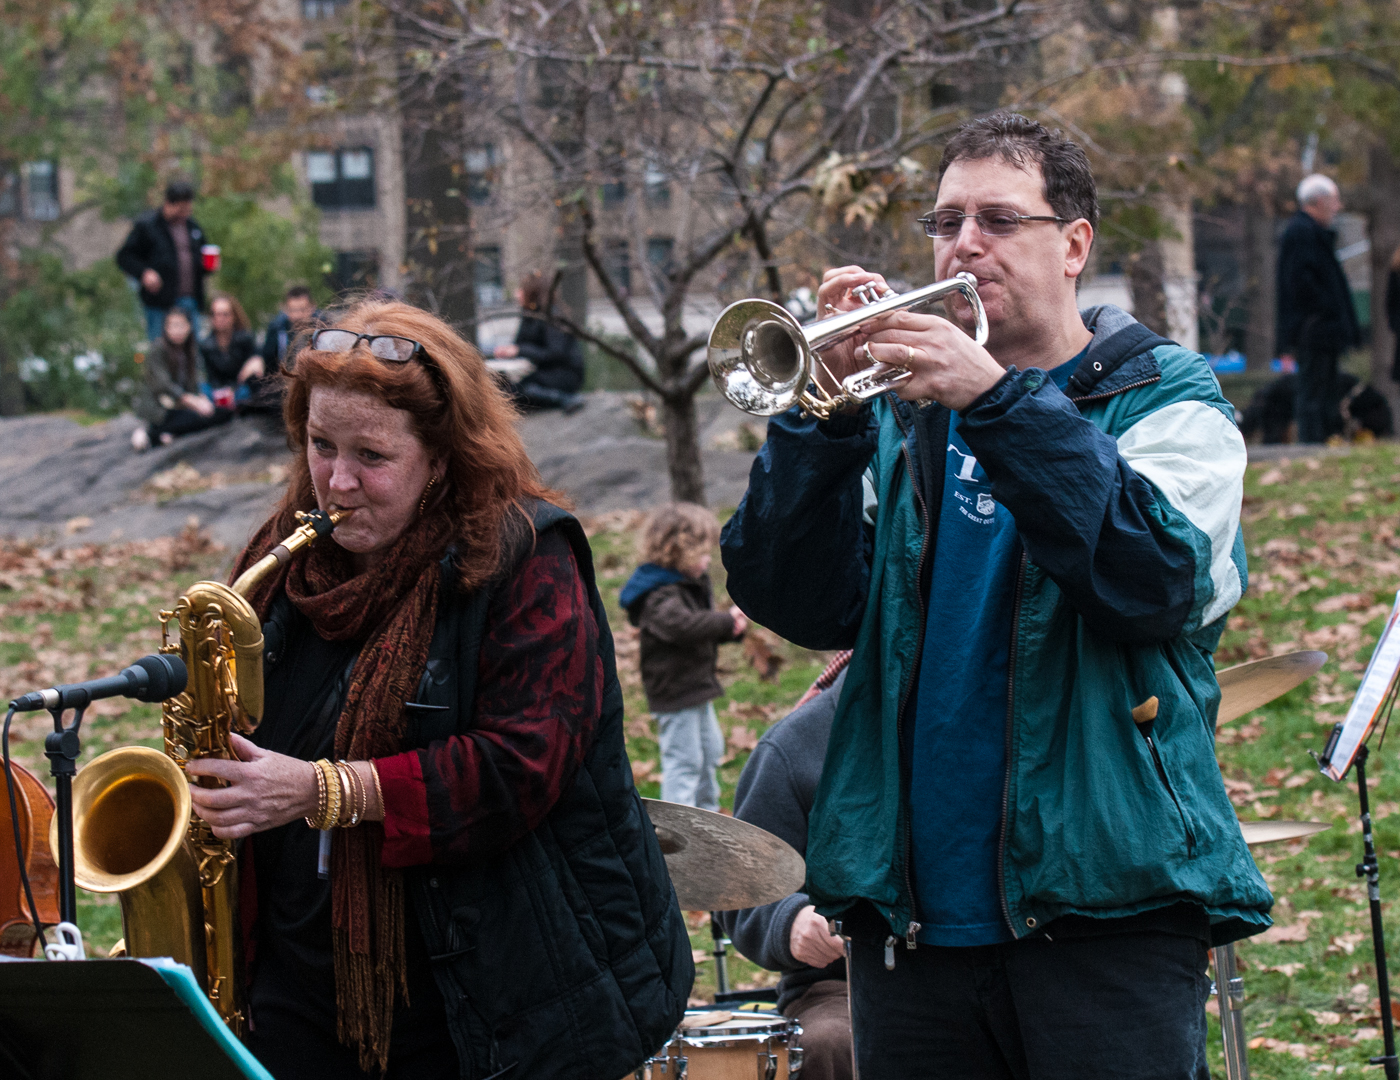 Claire Daly at Jazz and Colors in Central Park